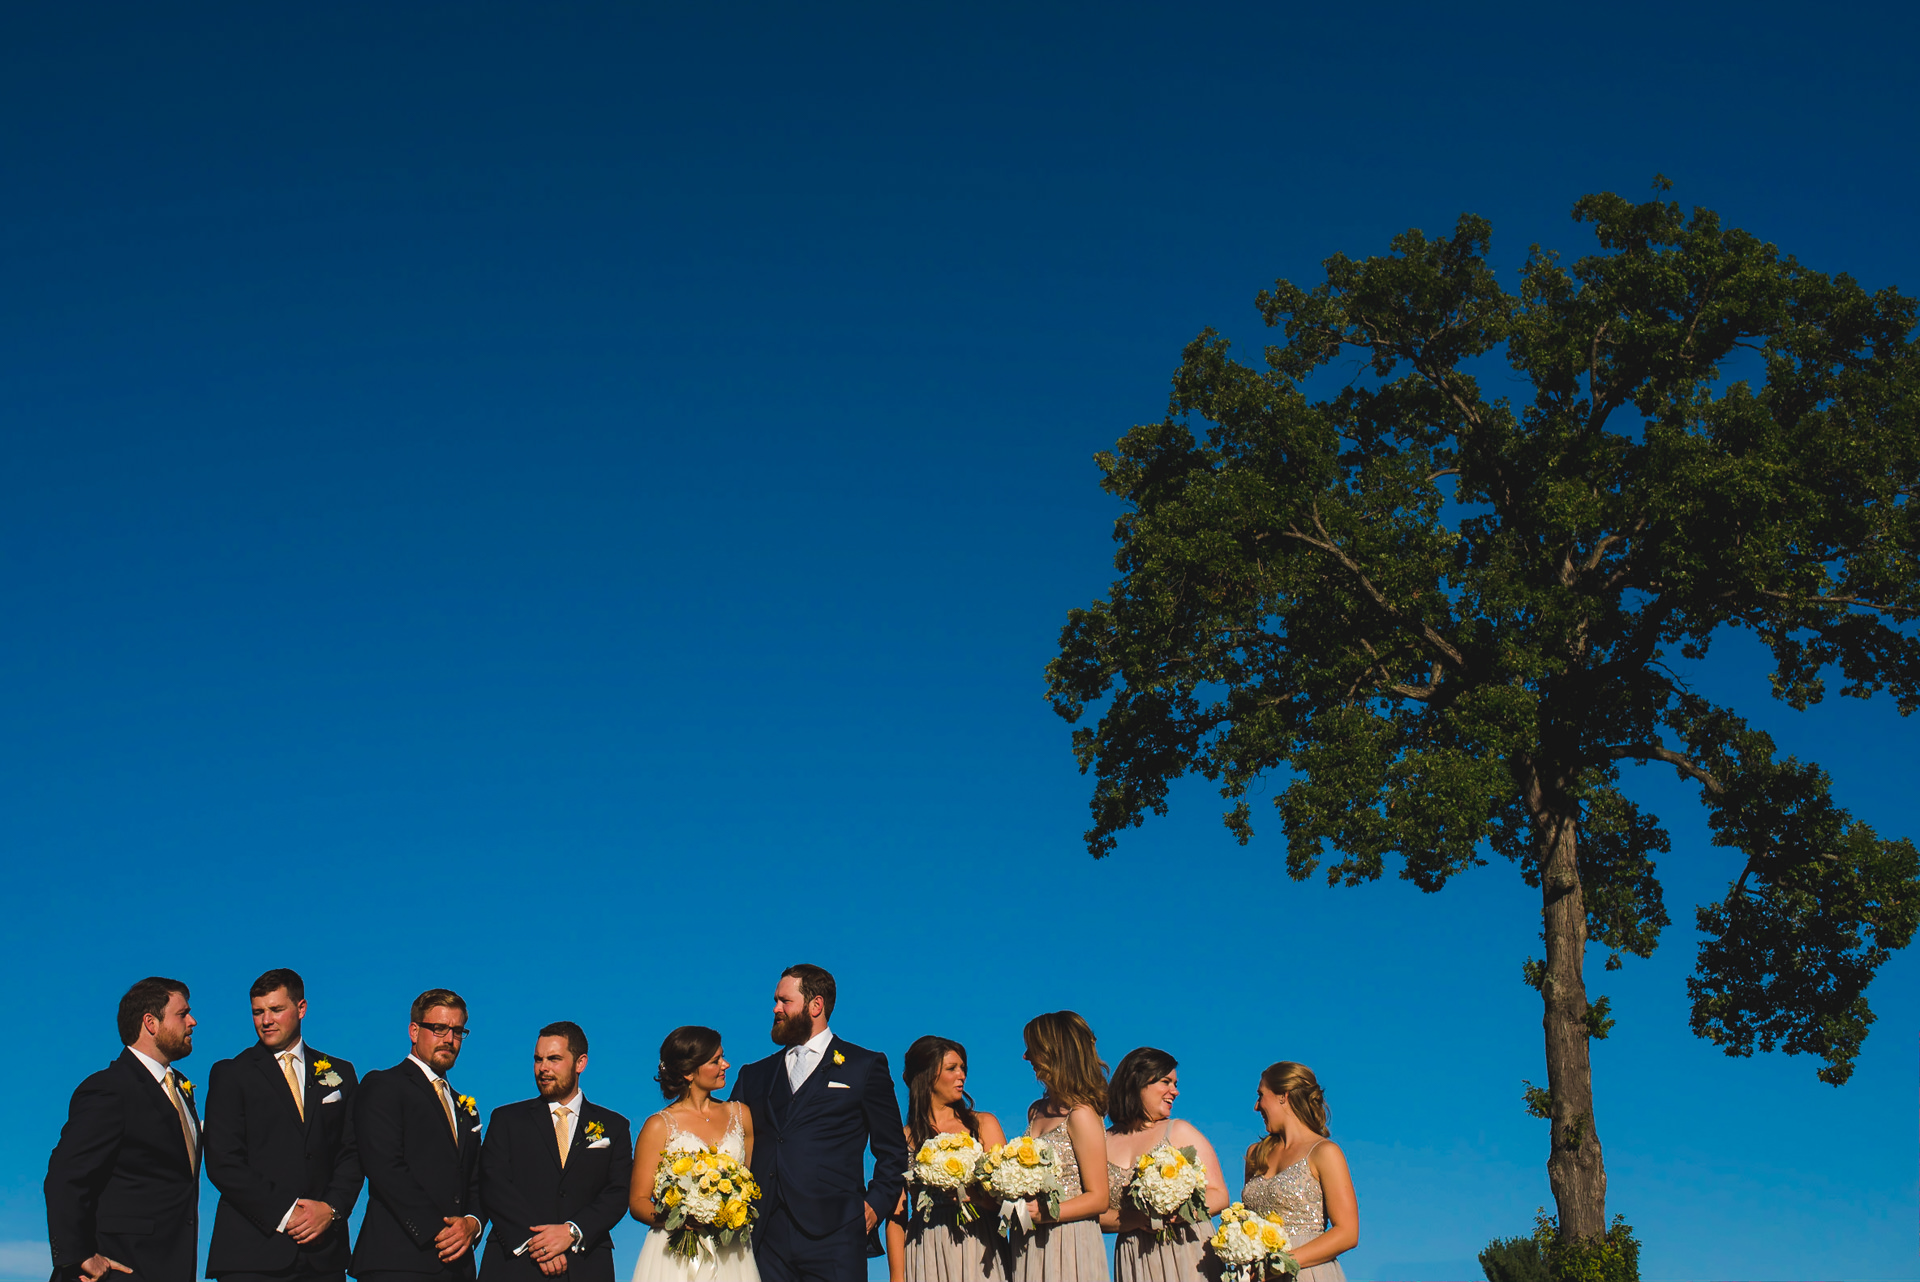 Creative bridal party portrait at Manor Country Club